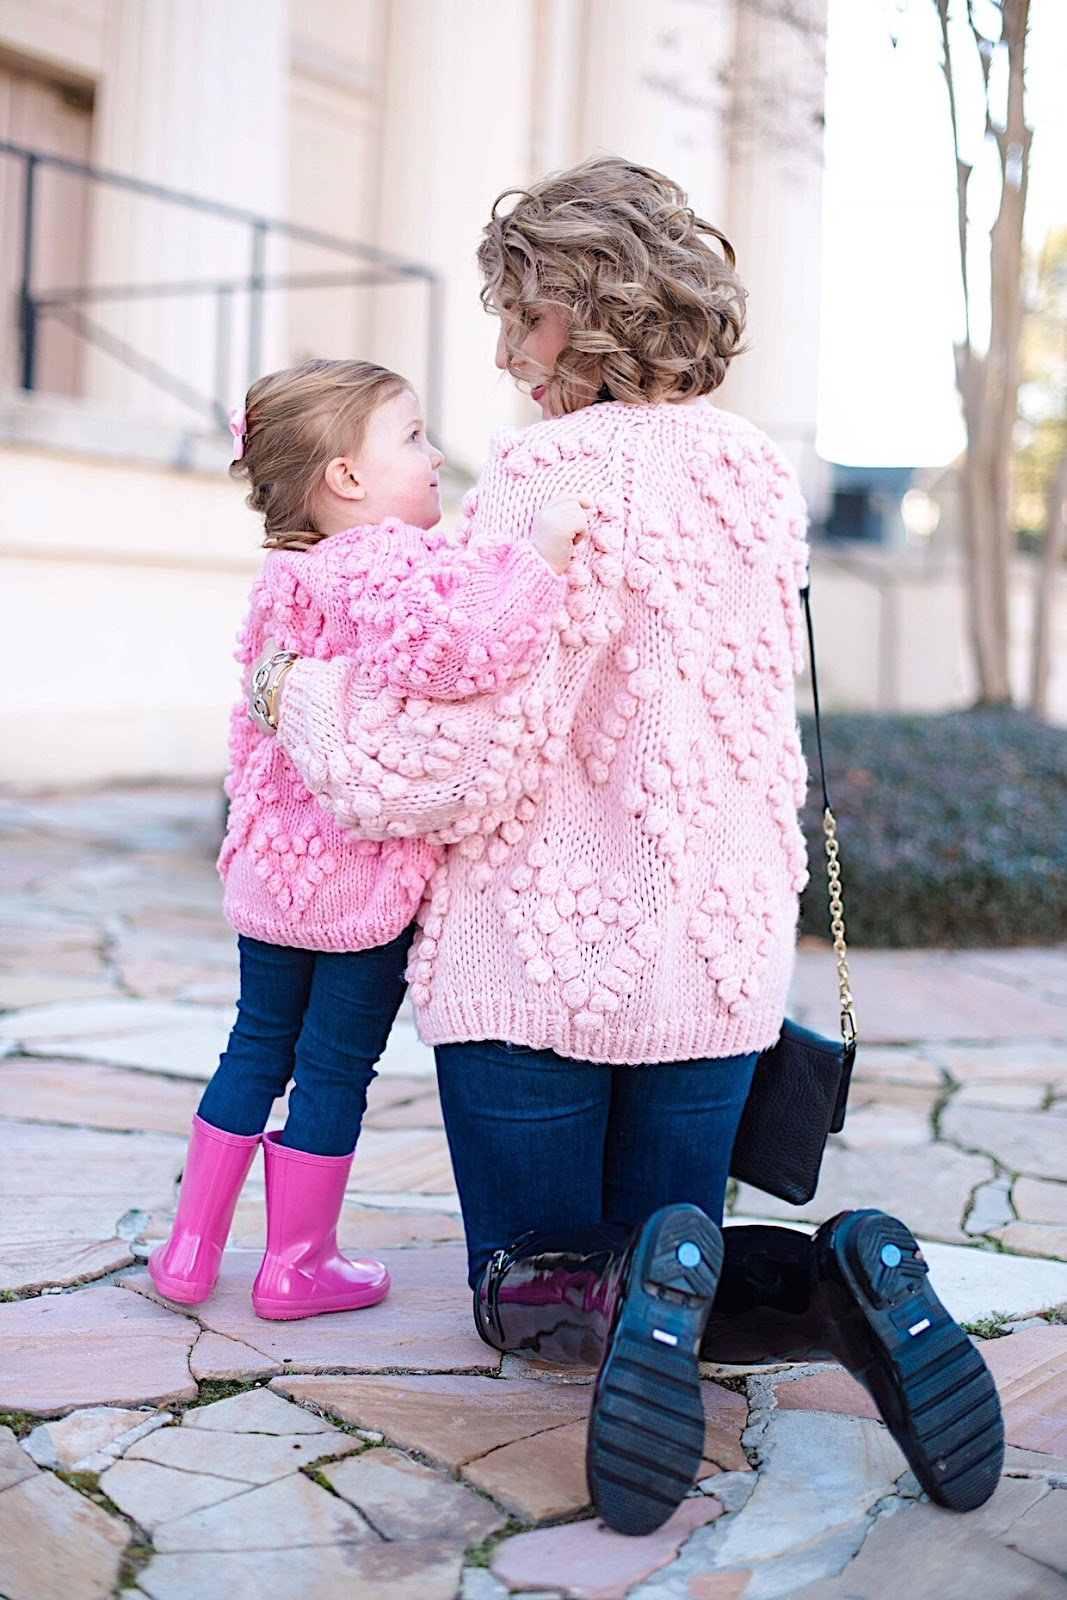 Mommy and Me Matching Heart Cardigans - All details can be found on Something Delightful Blog